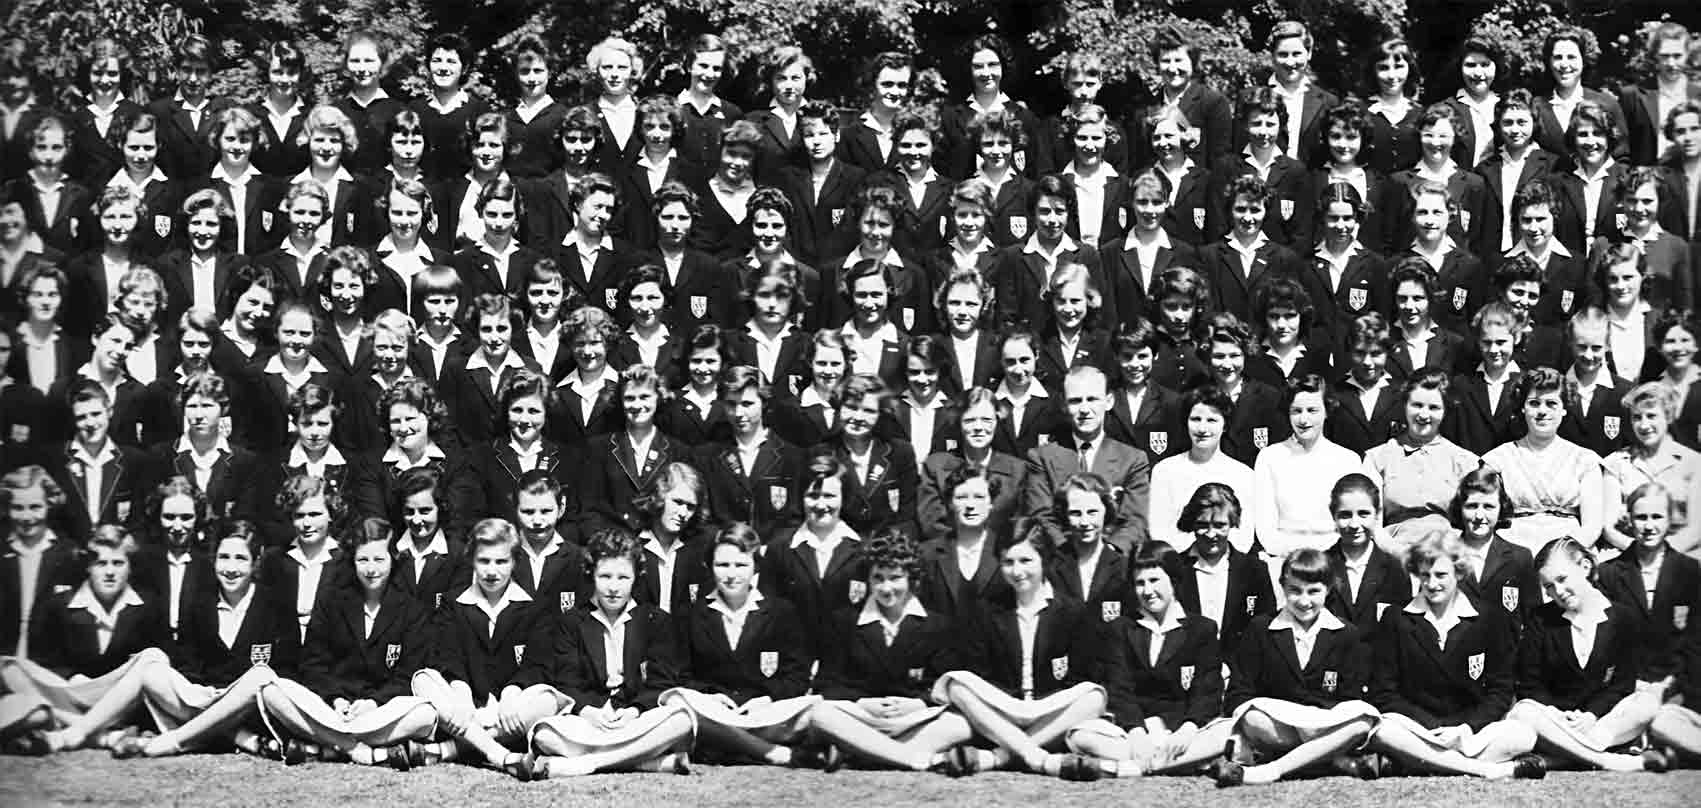 Second left section of the 1957 School photograph for Copthall County Grammar School